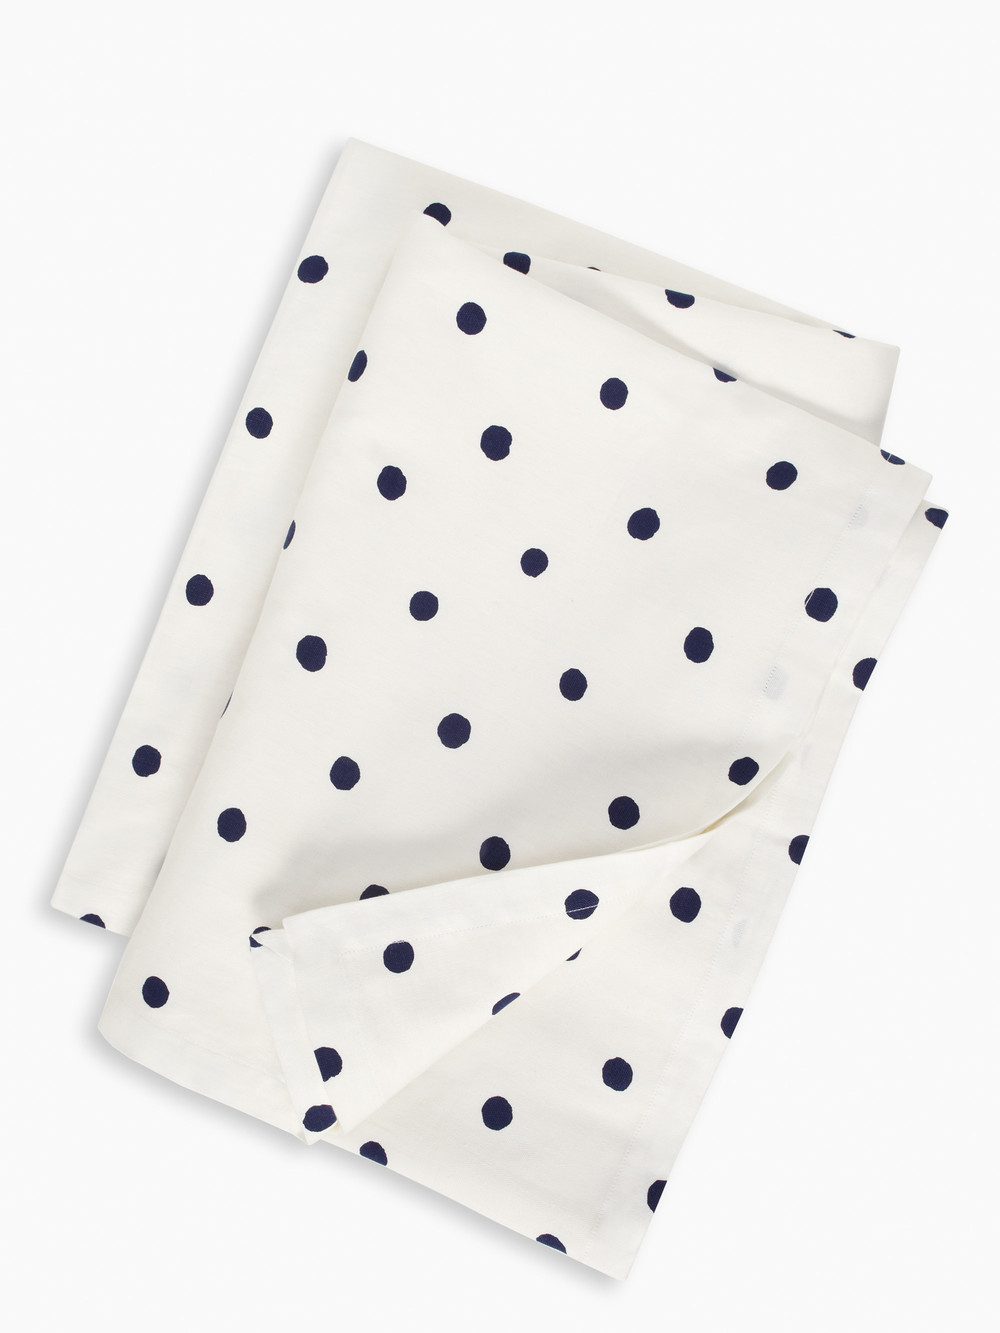 Passion picots! Jolie nappe Kate Spade abordable.